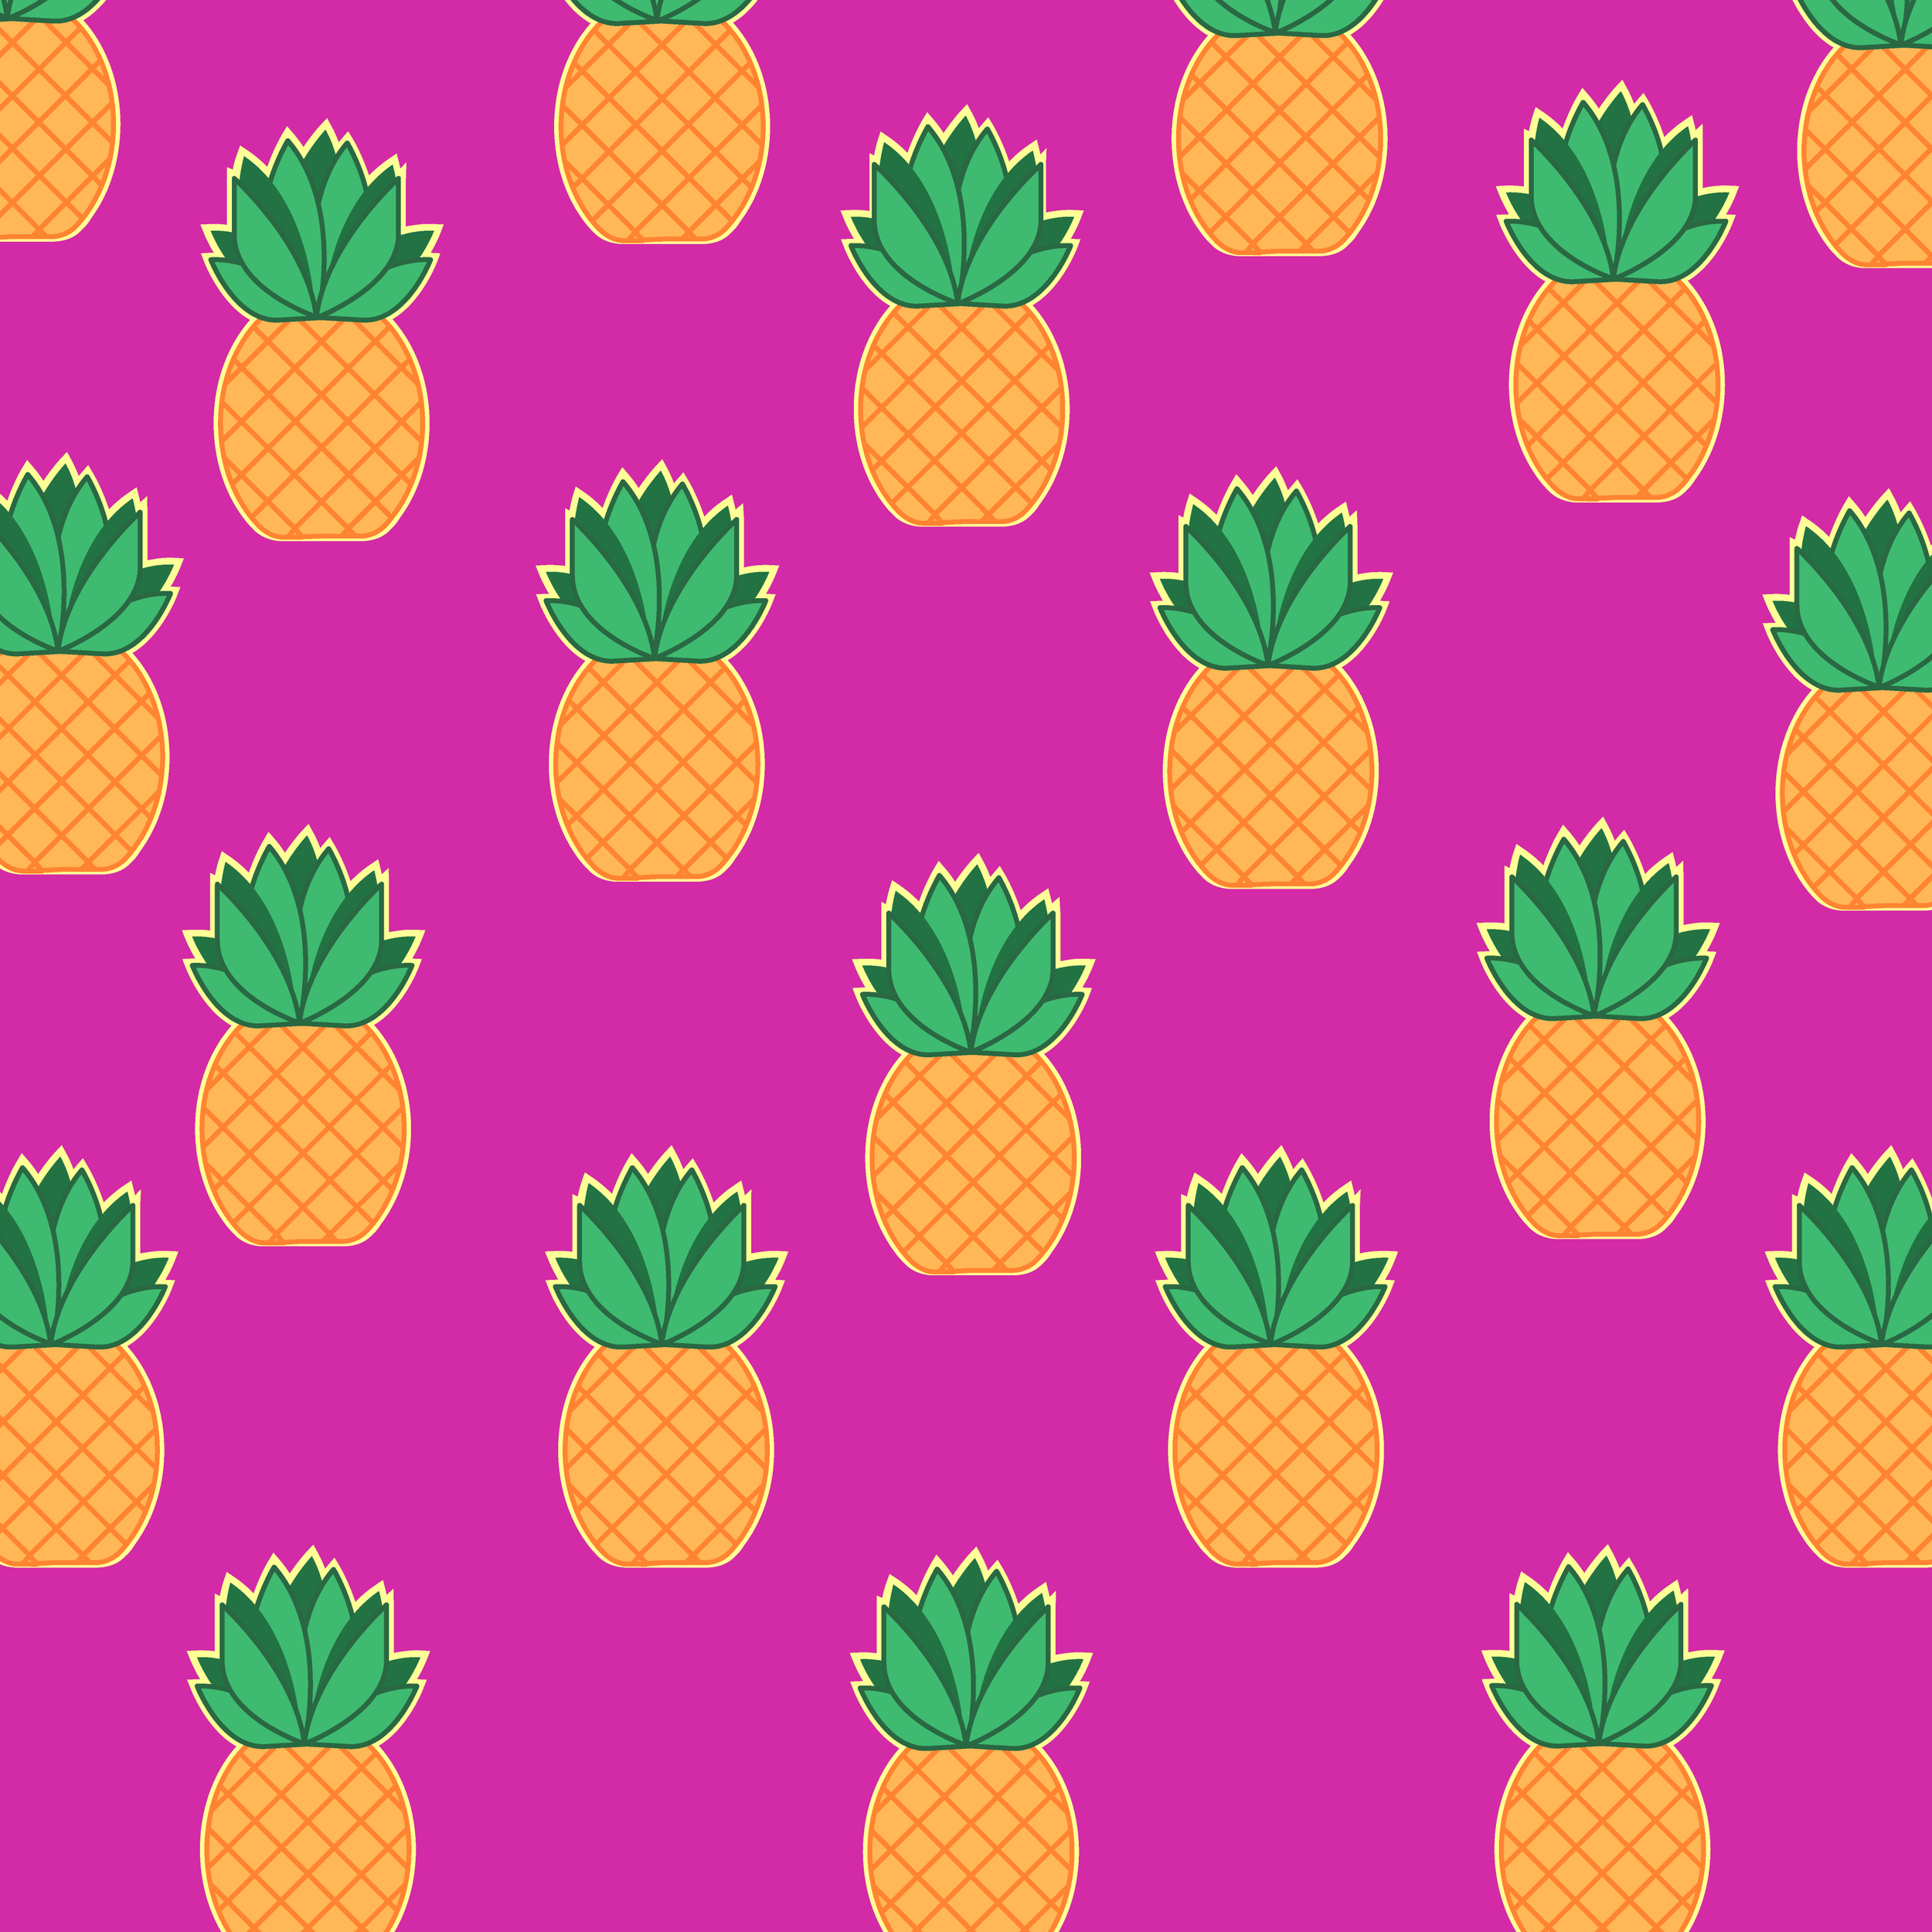 Pineapple_pattern-01.png